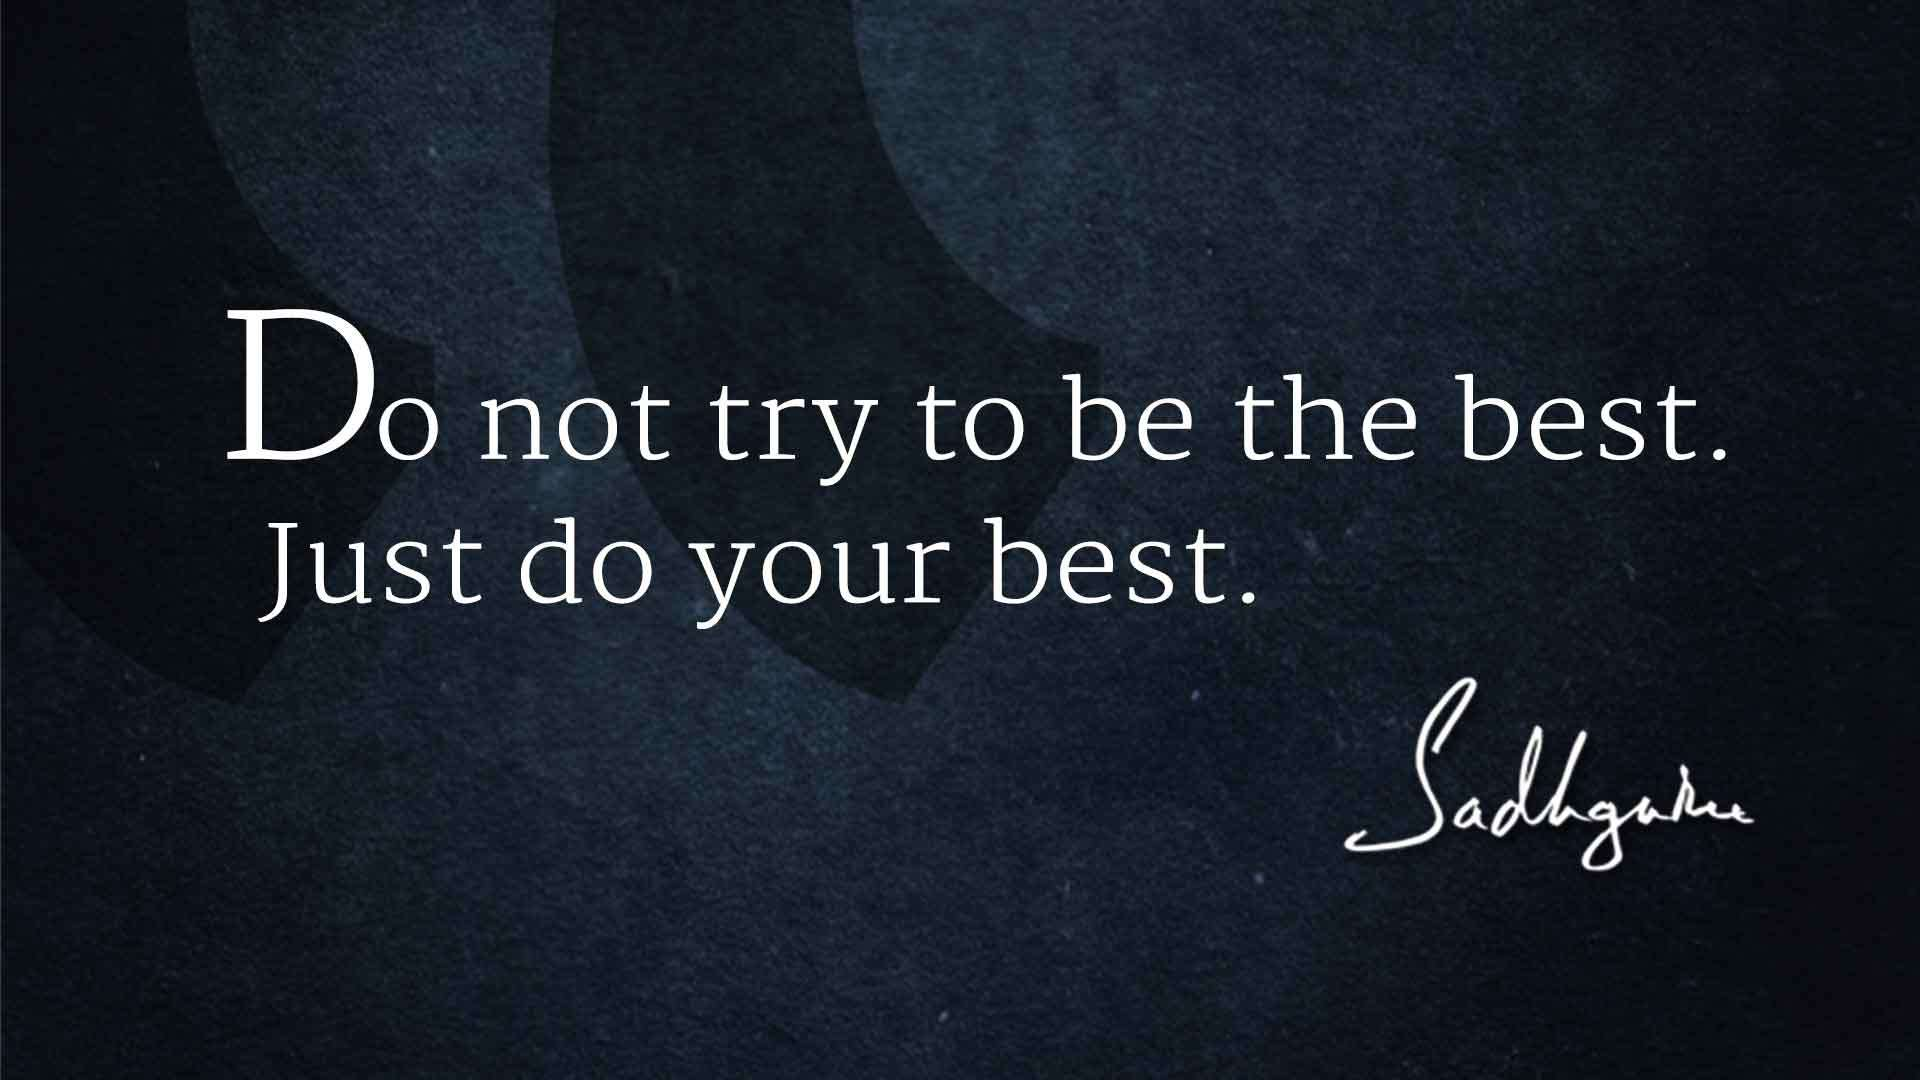 Worst New Year Quotes: 5 Sadhguru Quotes For The New Year